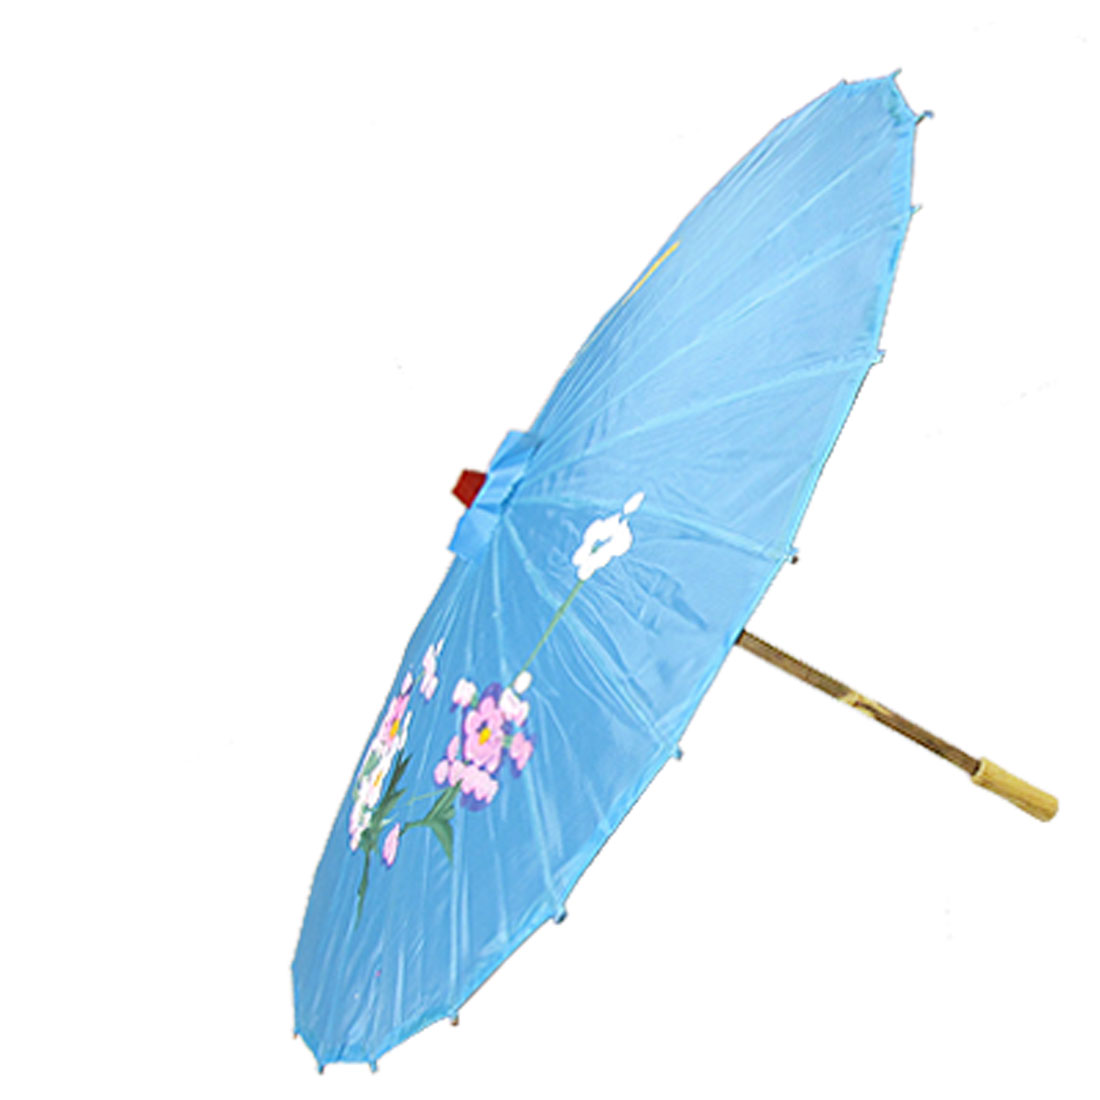 Wooden Grip Skyblue Nylon Fabric Floral Dancing Parasol Umbrella